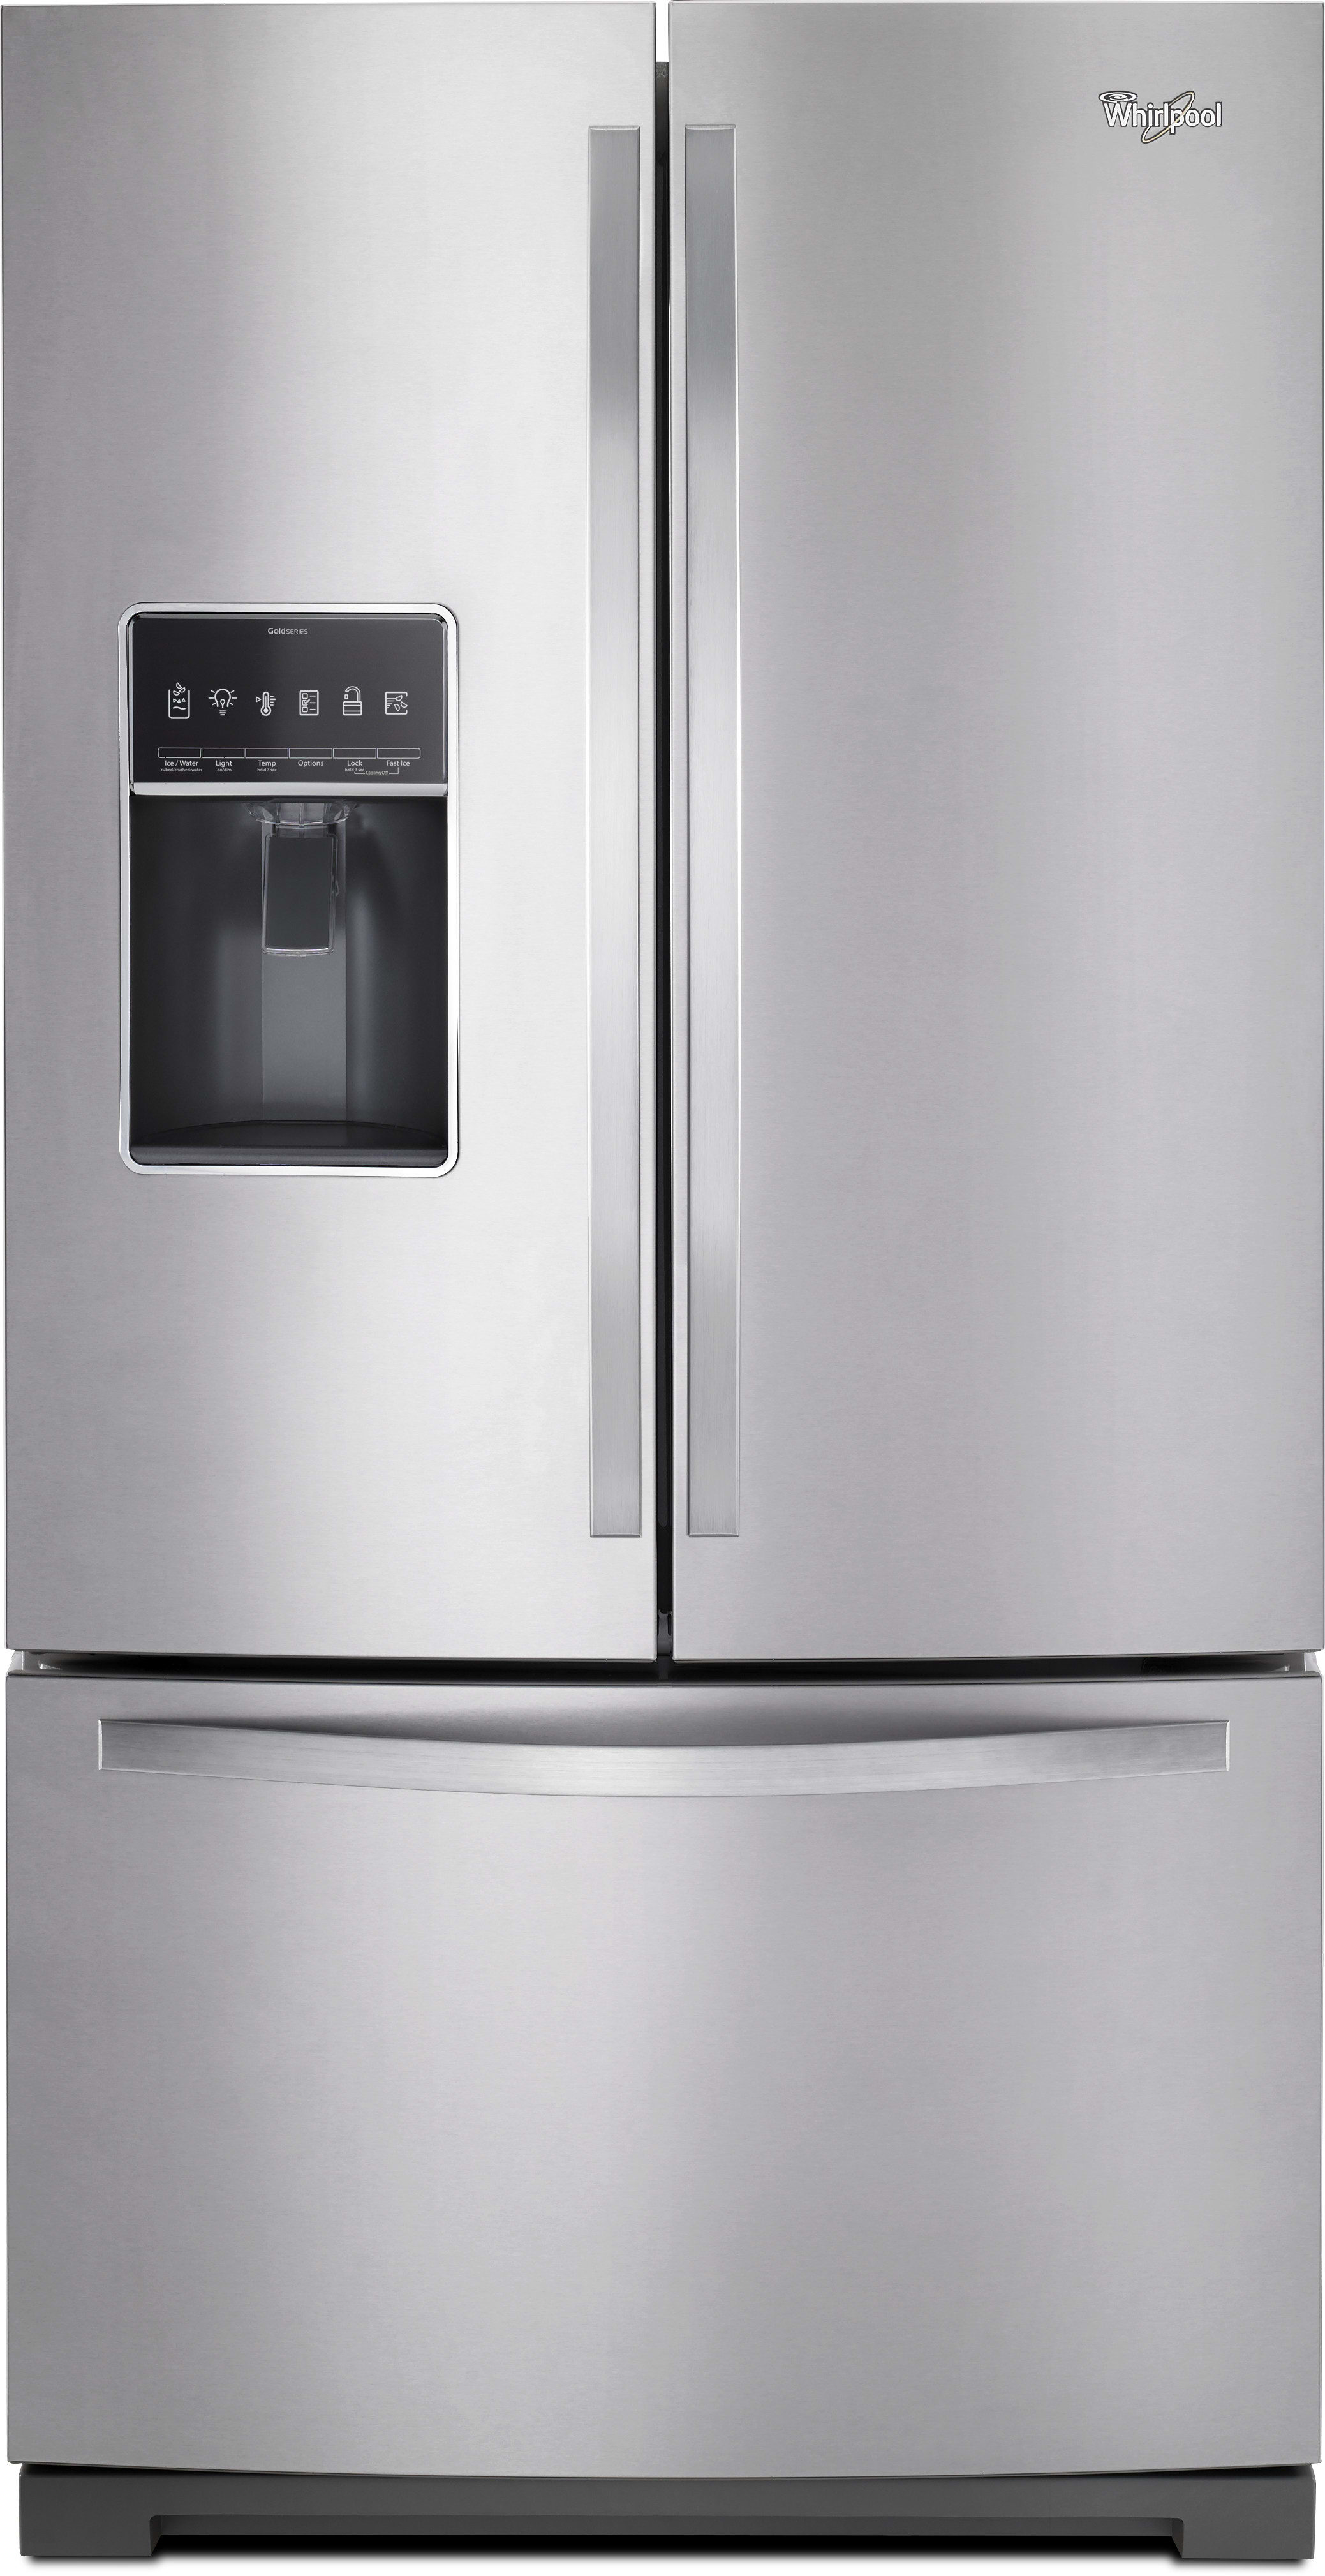 Whirlpool Wrf757sdem 36 Inch French Door Refrigerator With